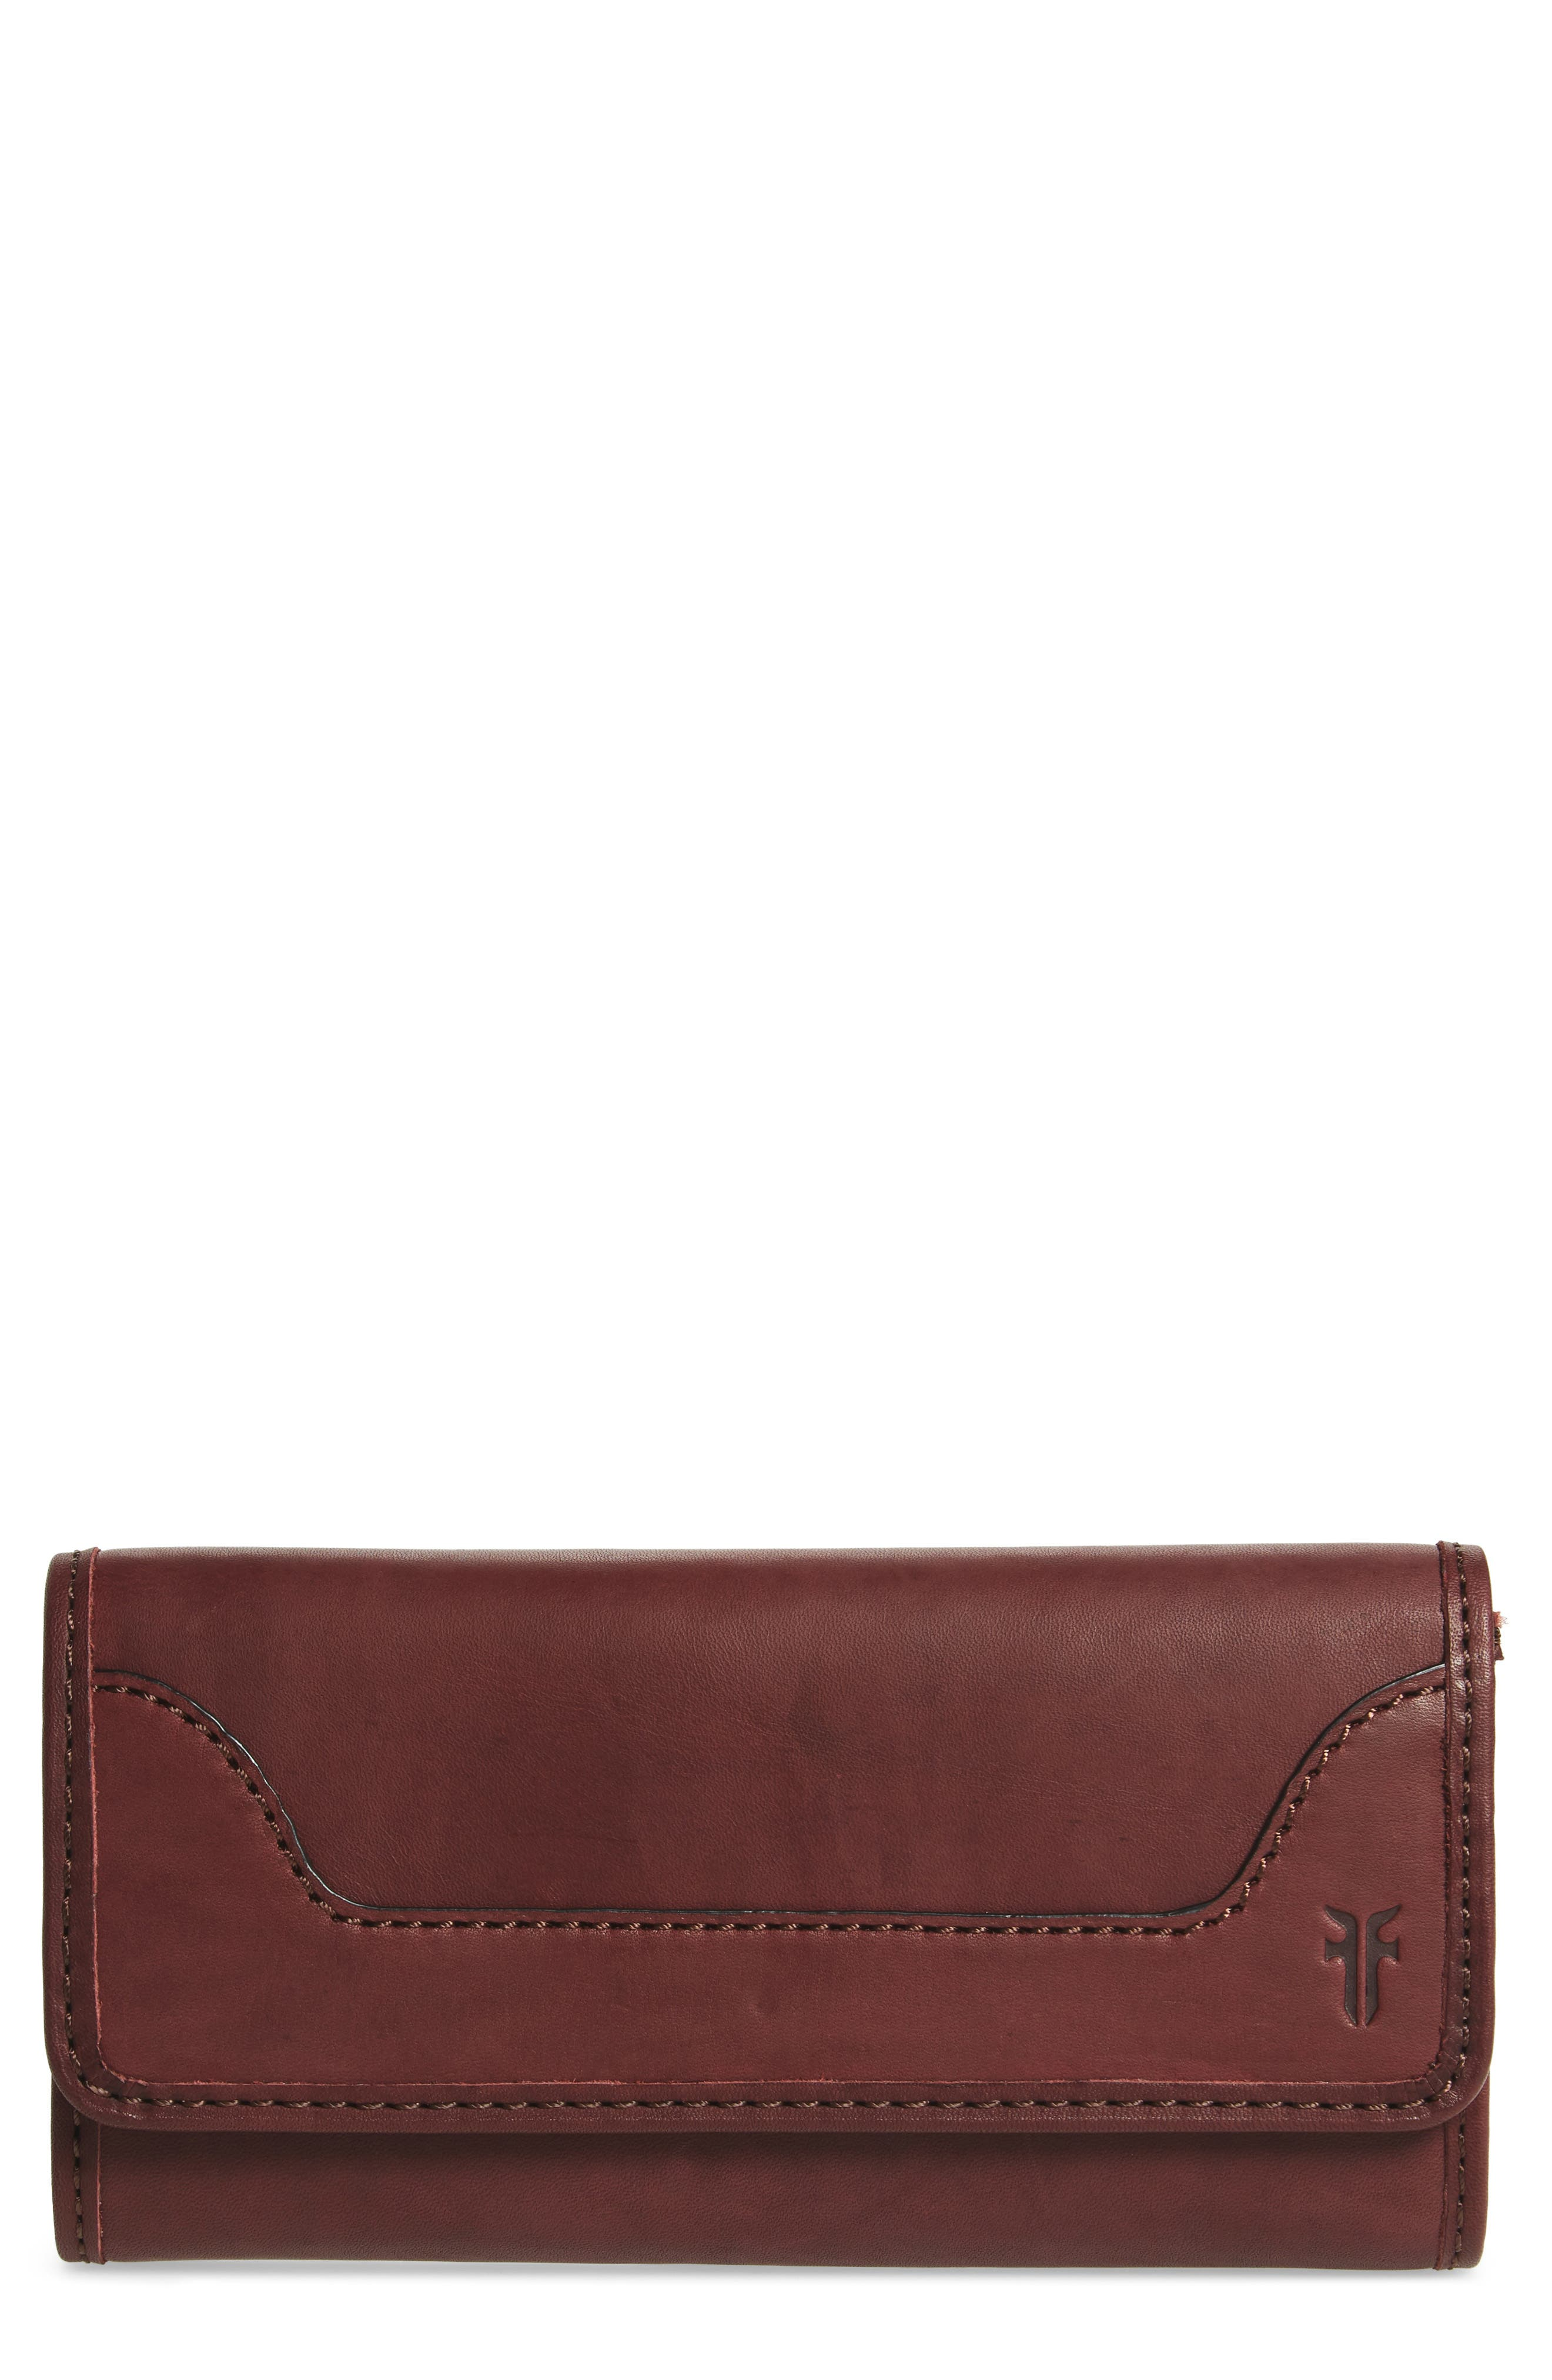 Frye Melissa Large Trifold Leather Wallet